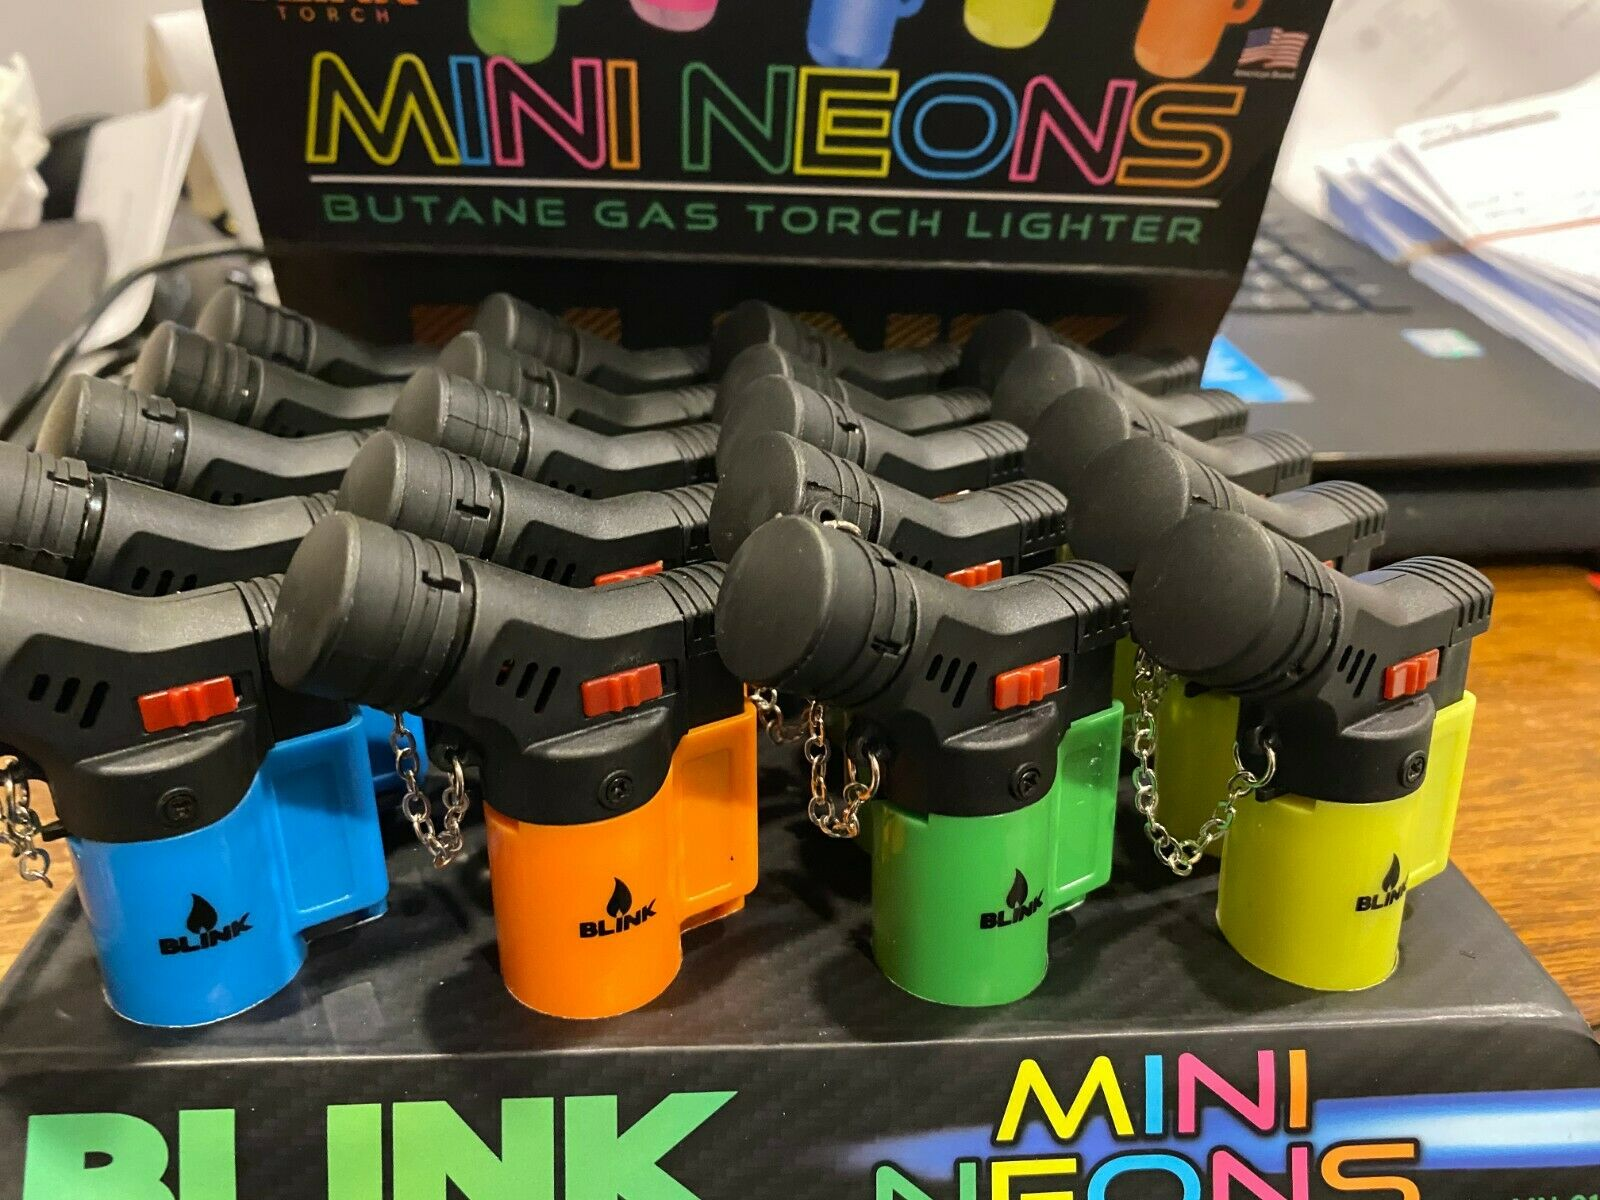 Blink Butane Gas Torch Lighter Neon with Adjustable Flame Re